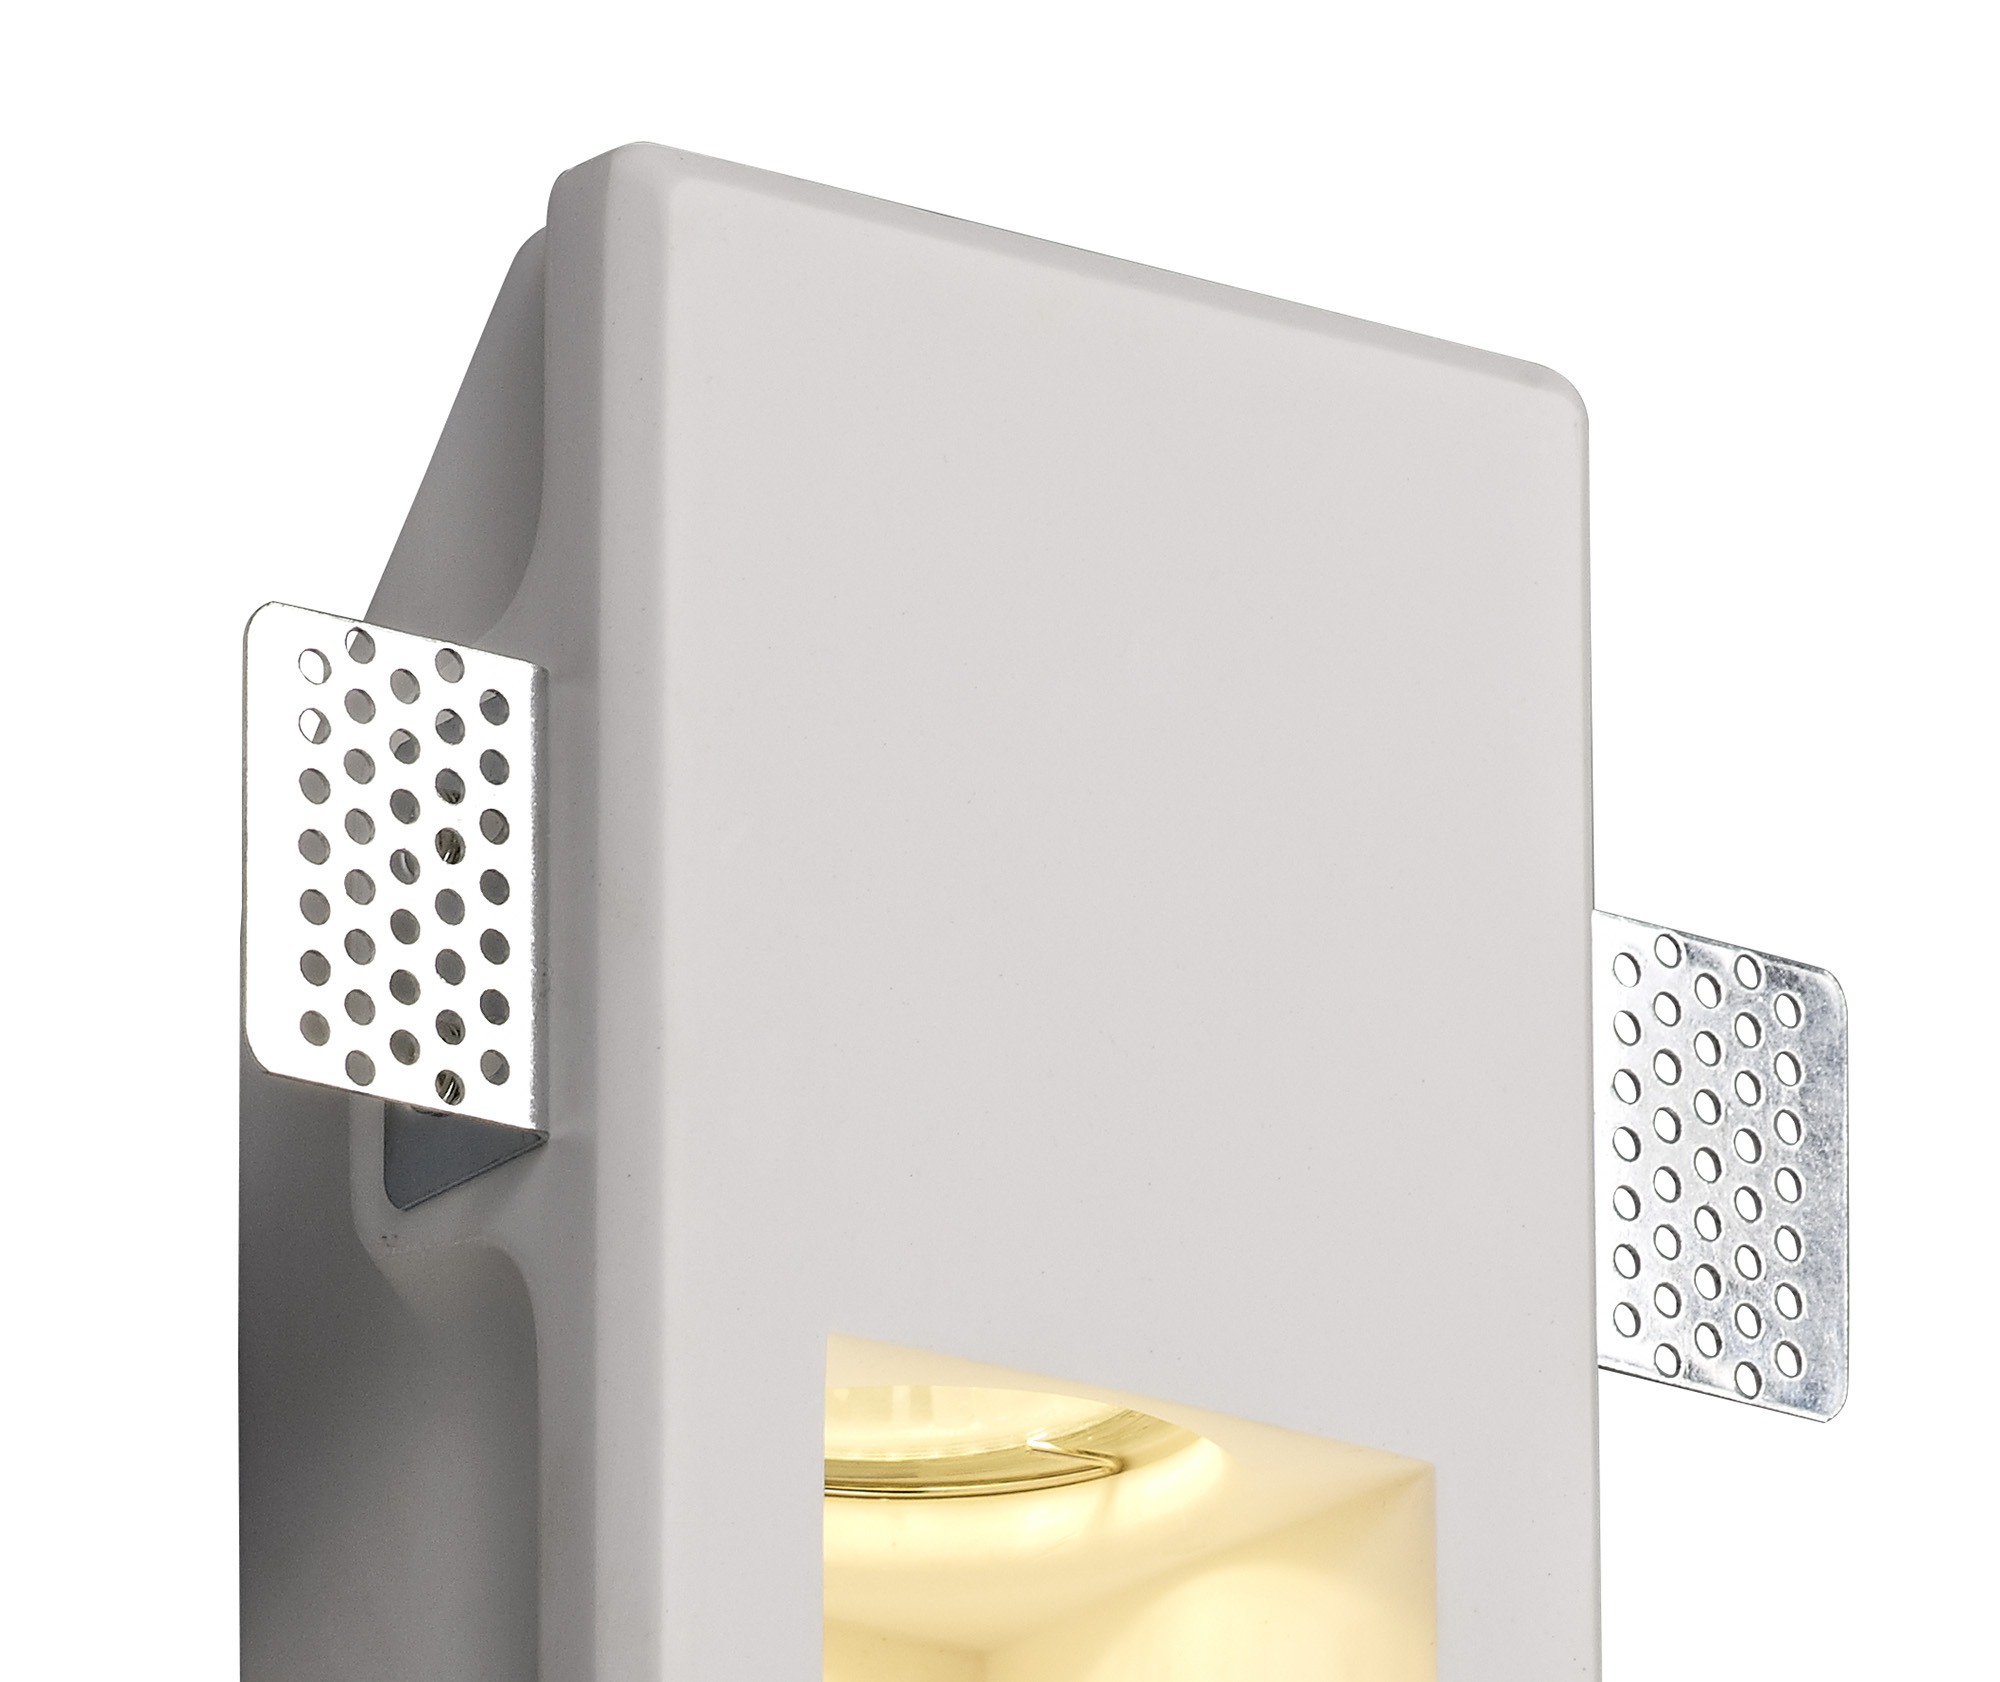 Small Recessed Wall Lamp, 1 x GU10, White Paintable Gypsum, Cut Out: L:253mmxW:103mm